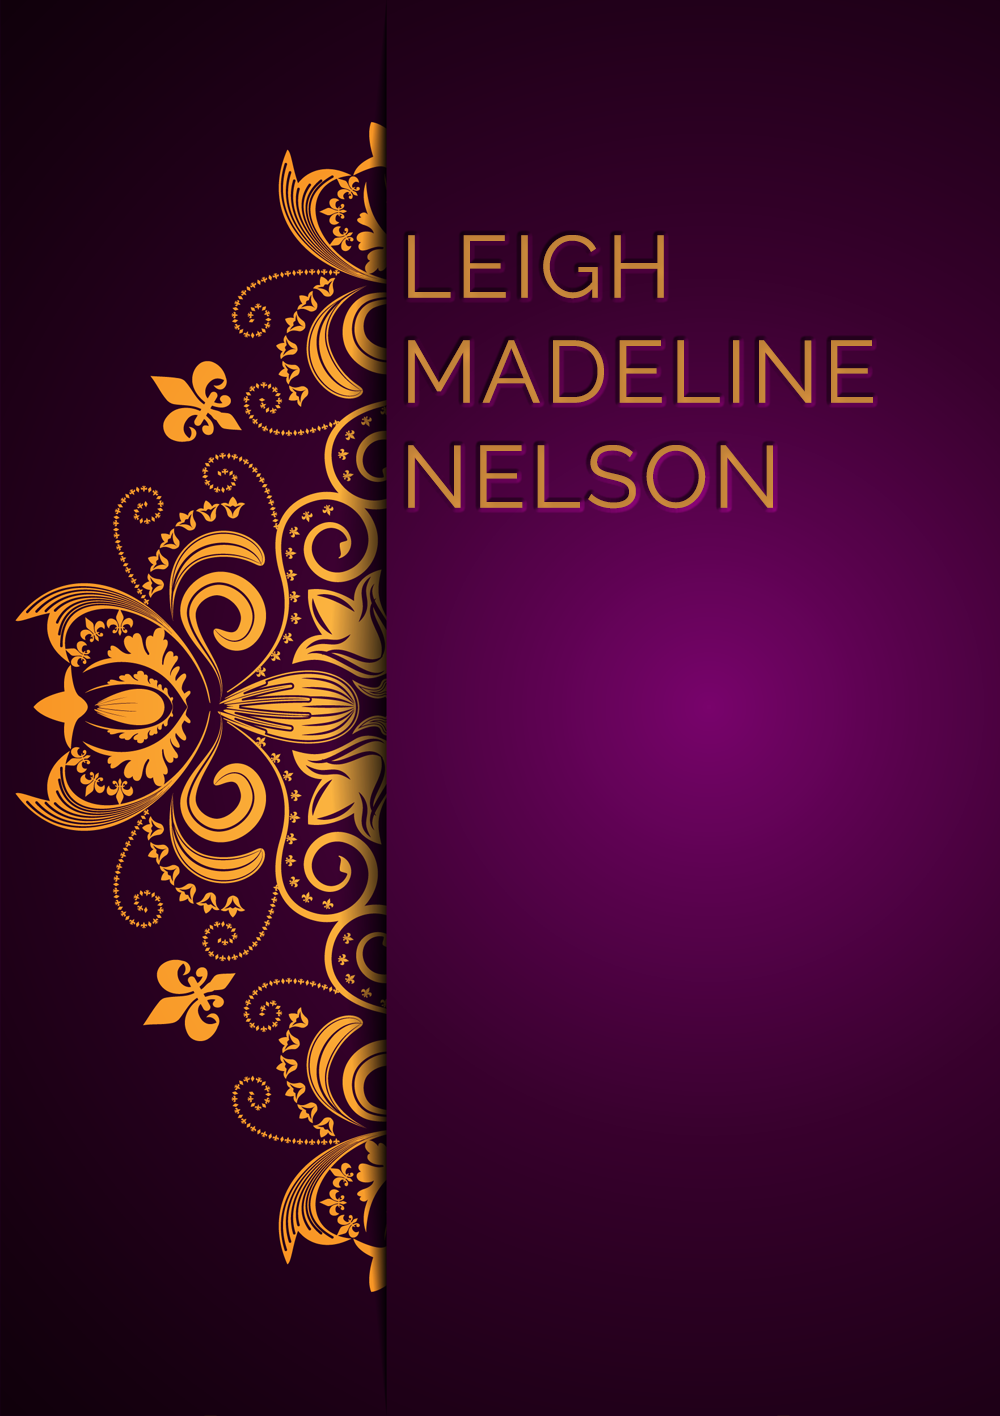 Leigh Madeline Nelson